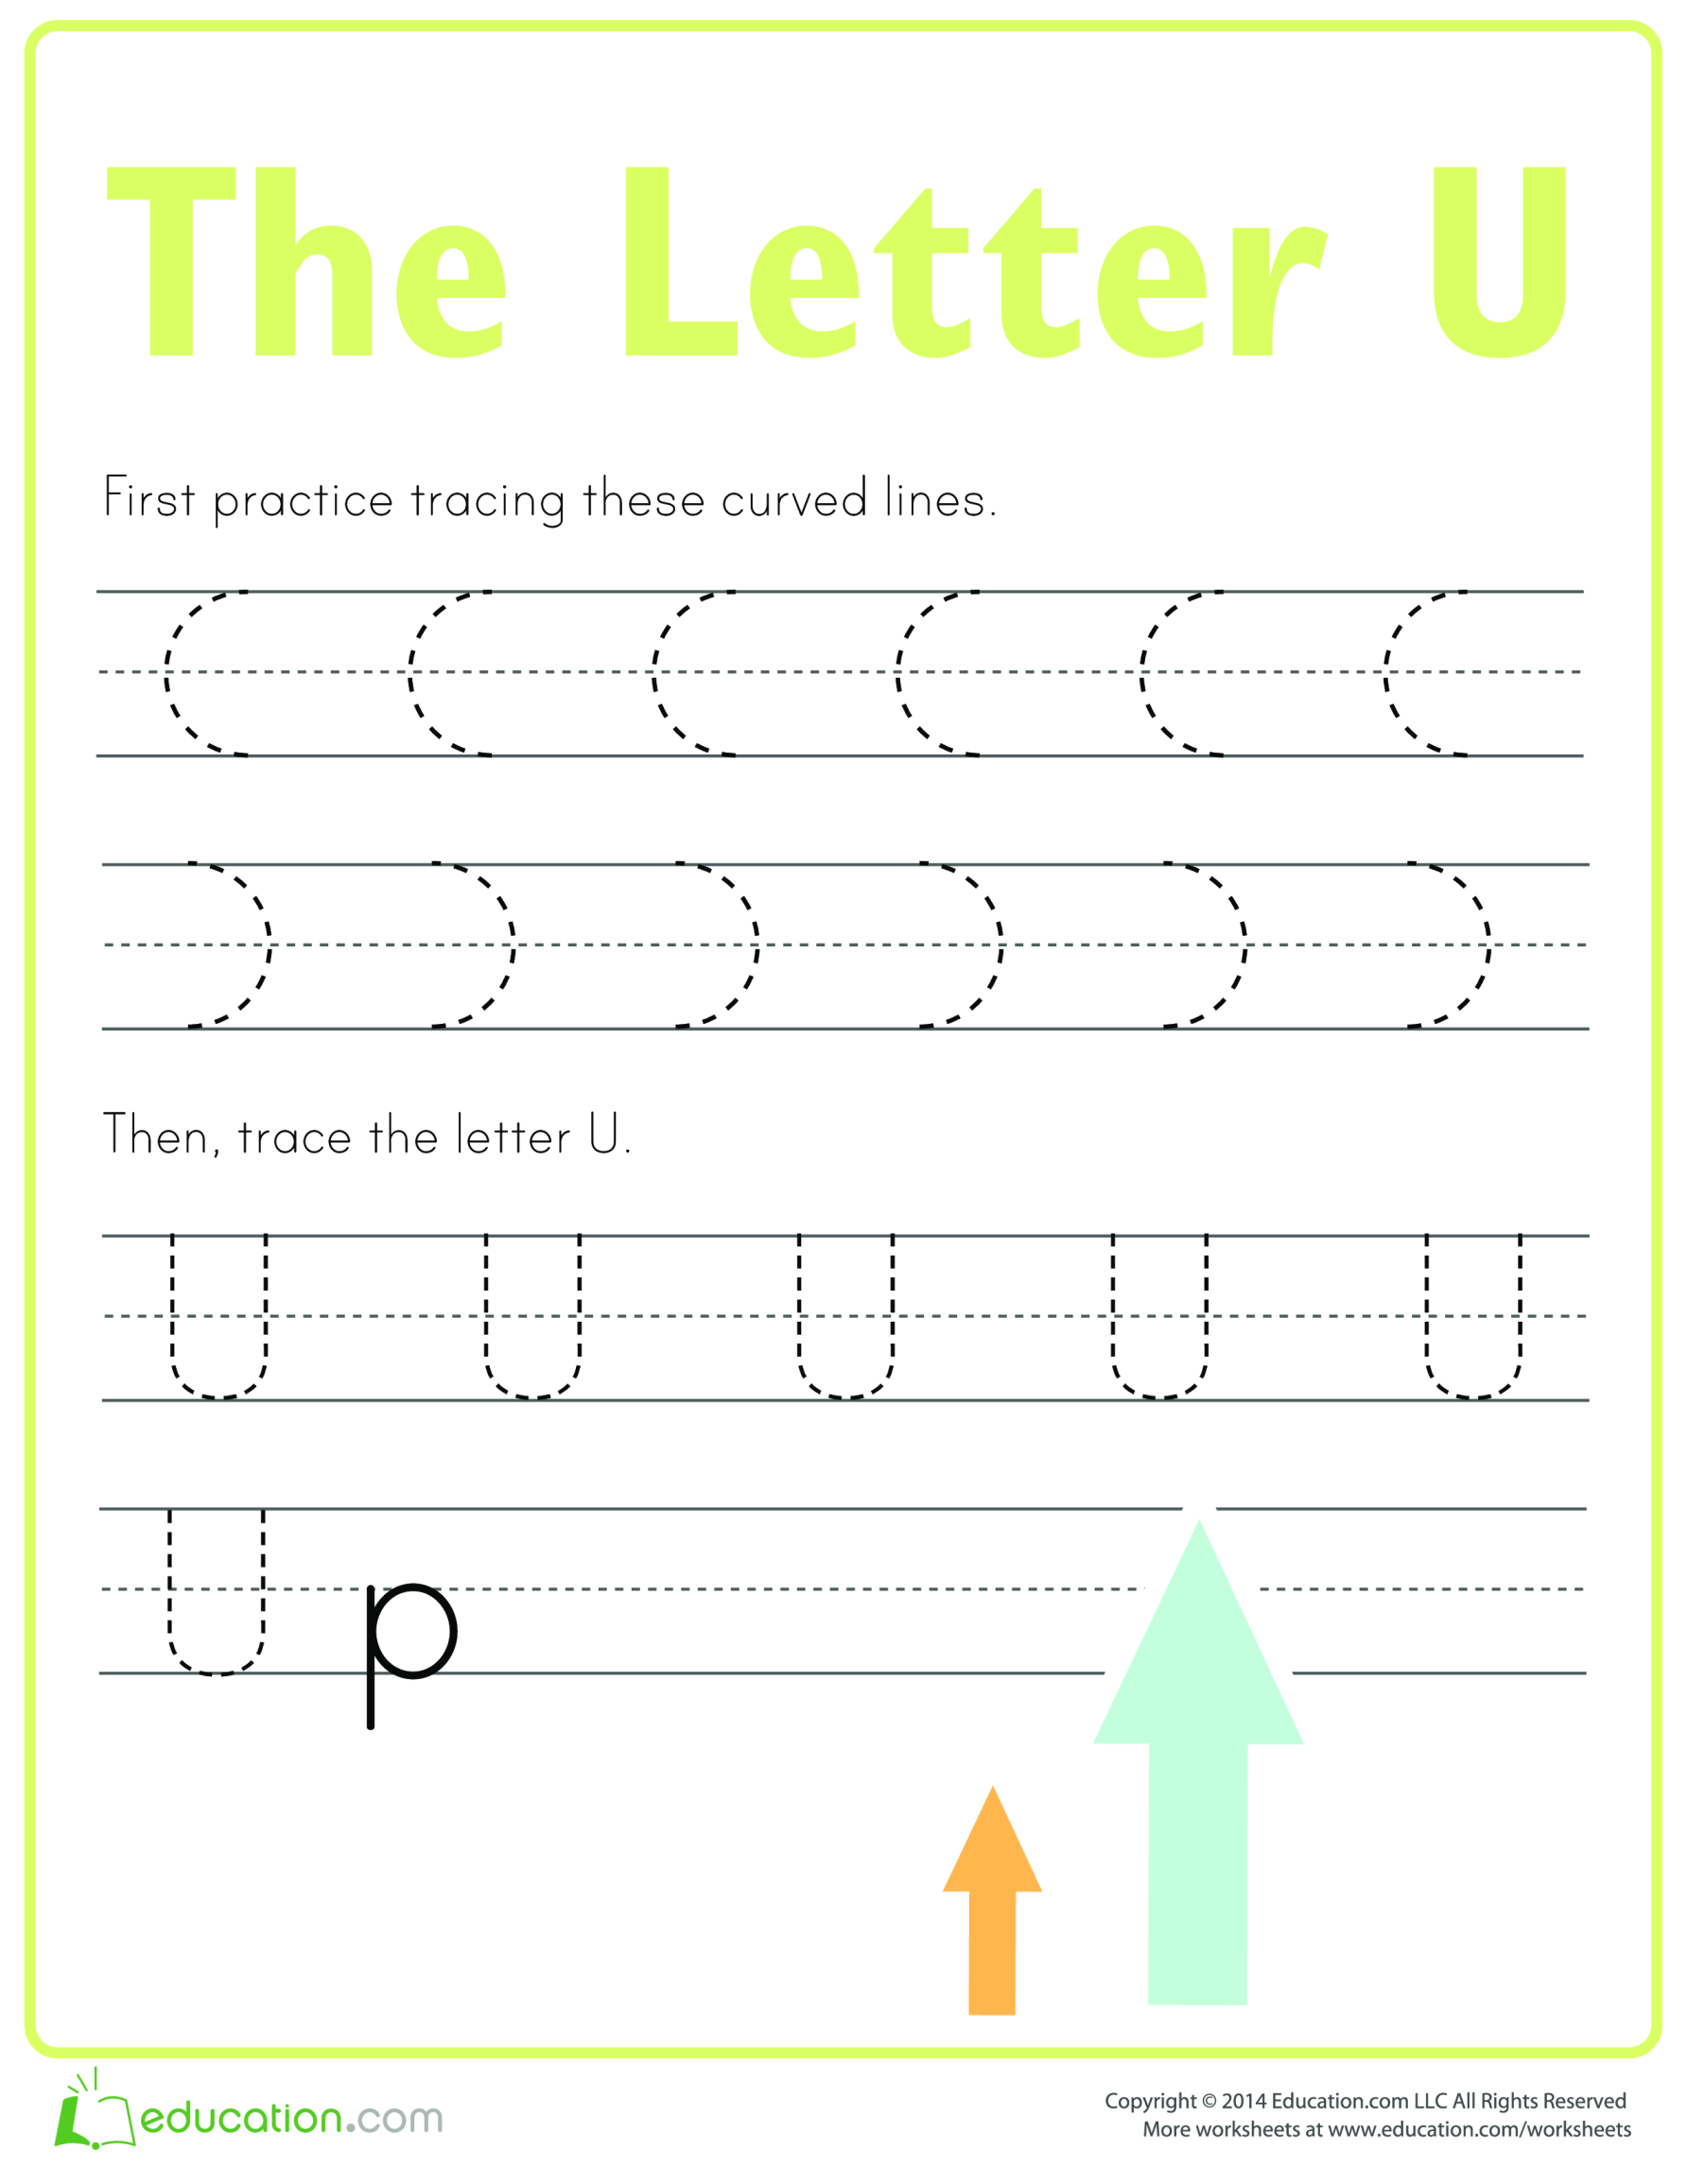 template topic preview image Learn to write letter U